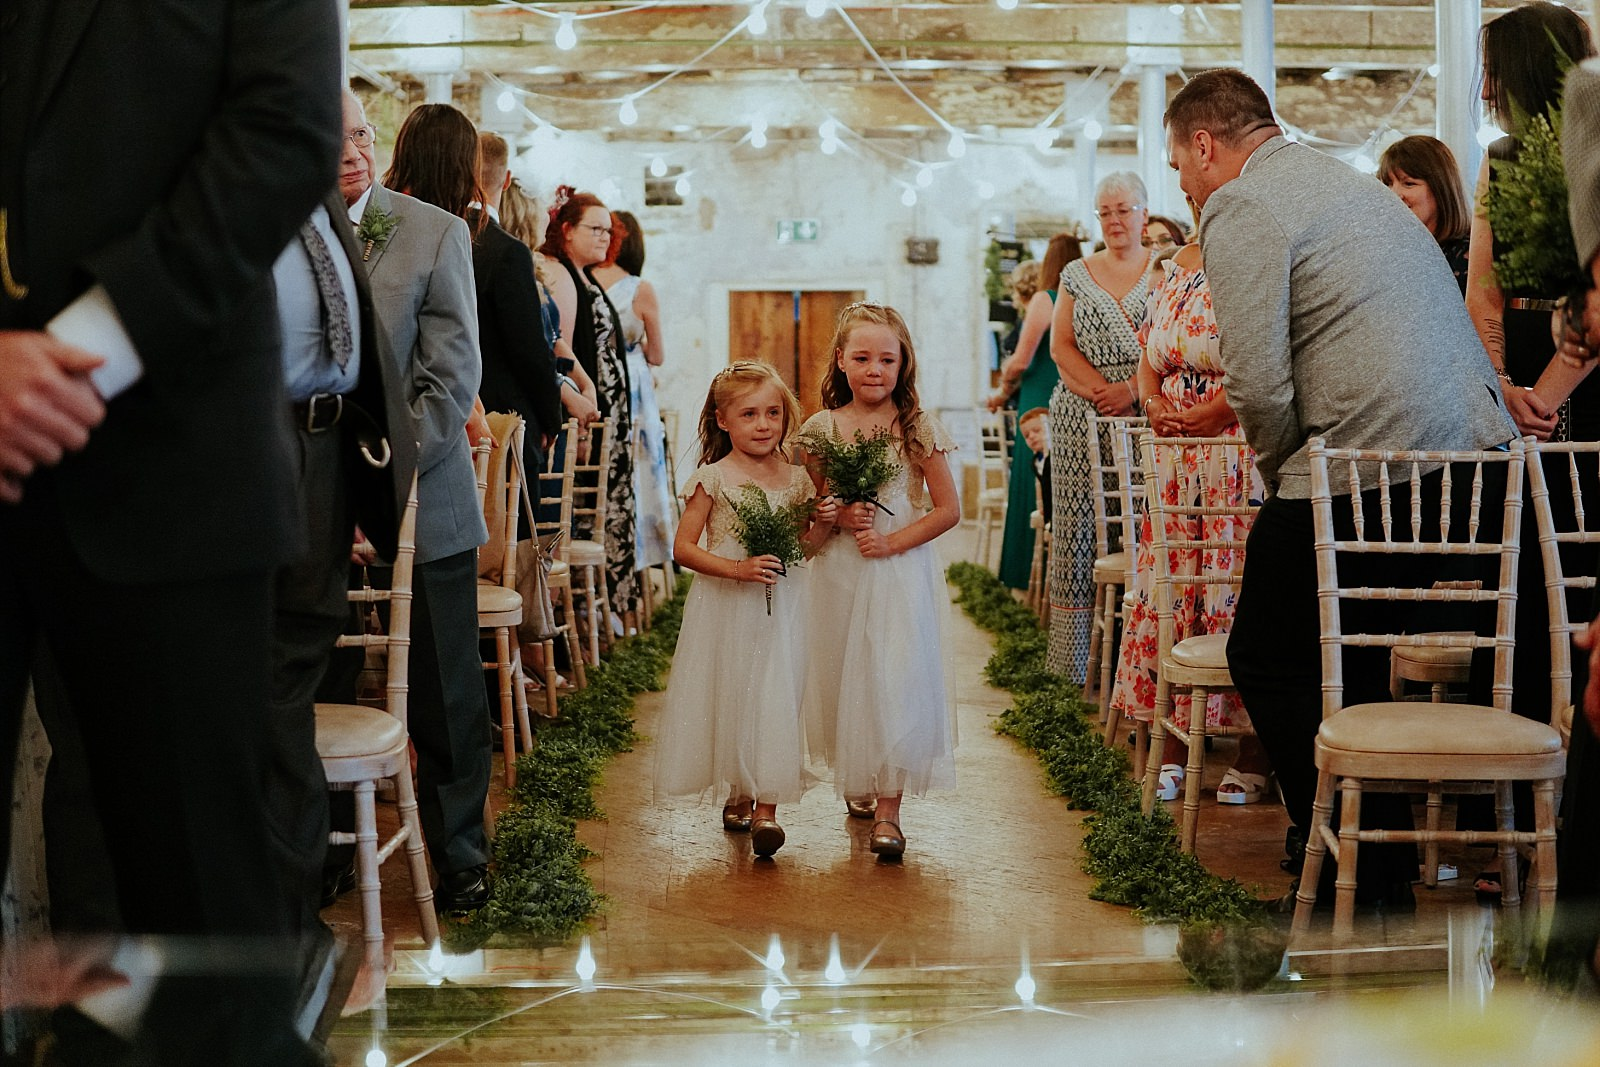 cute bridesmaids in white dresses walking down the aisle with green flowers